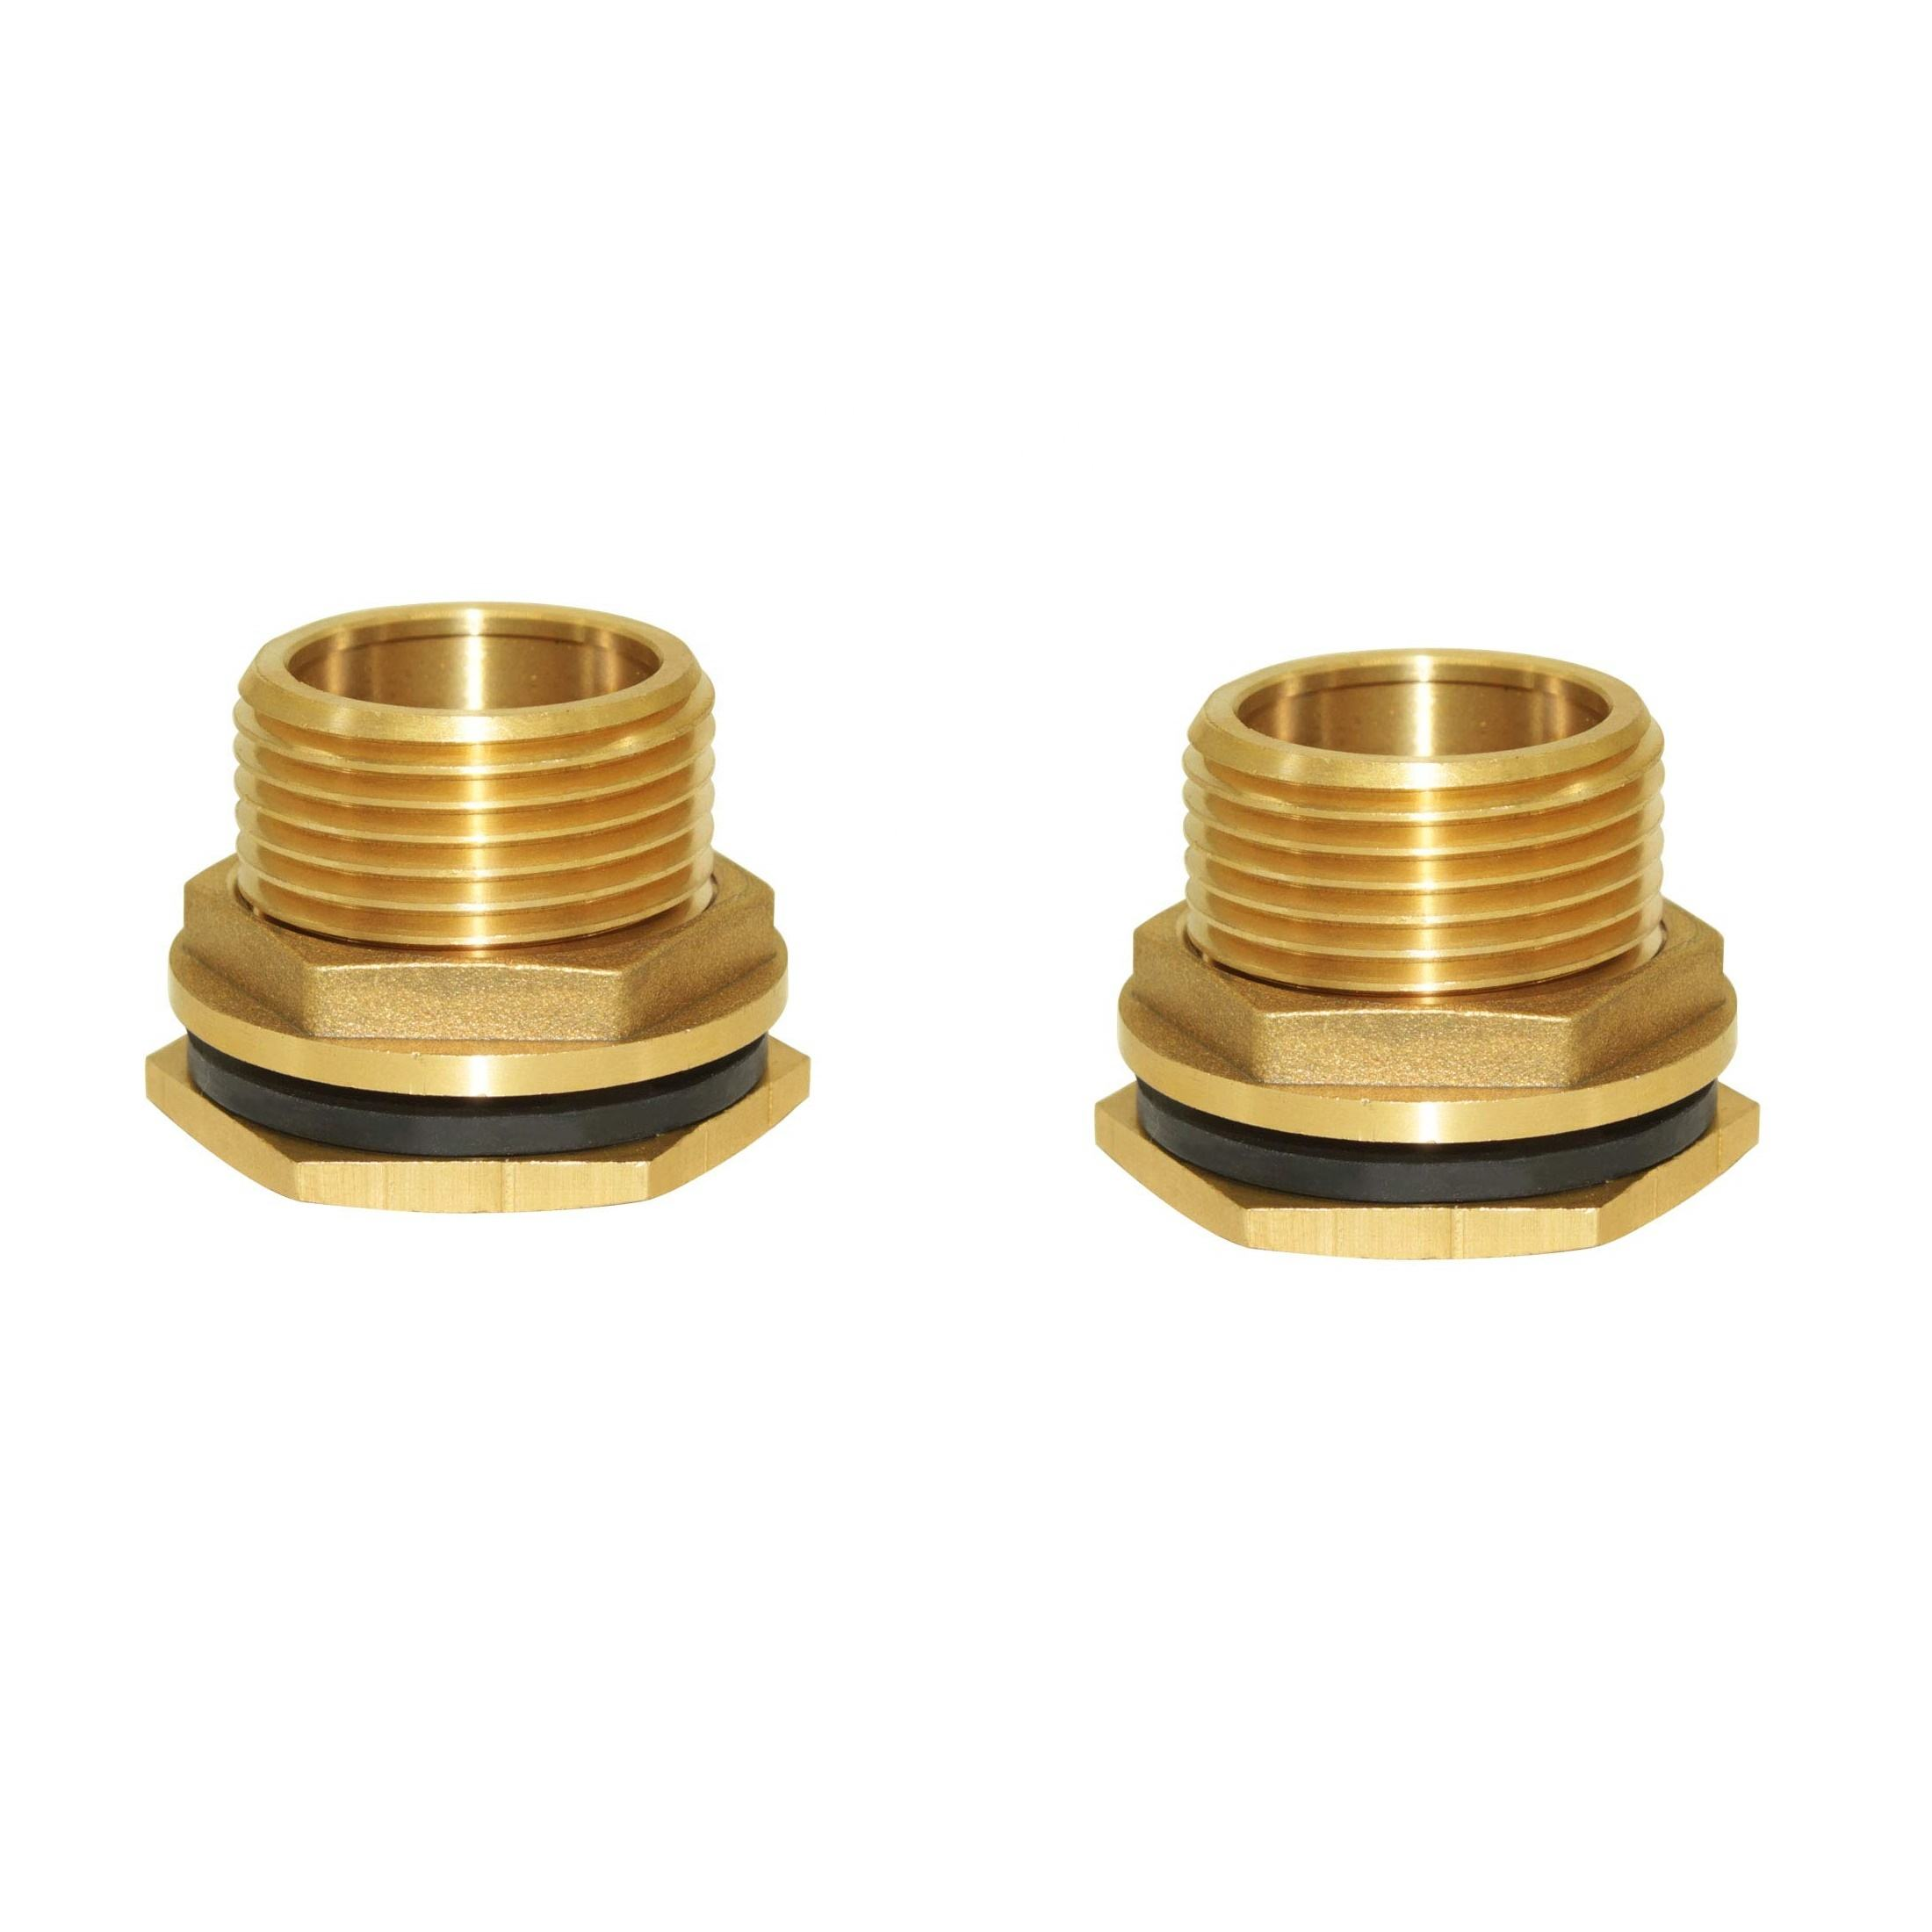 Brass Bulkhead Fitting No Female Water Tank Connector Threaded with Rubber Ring